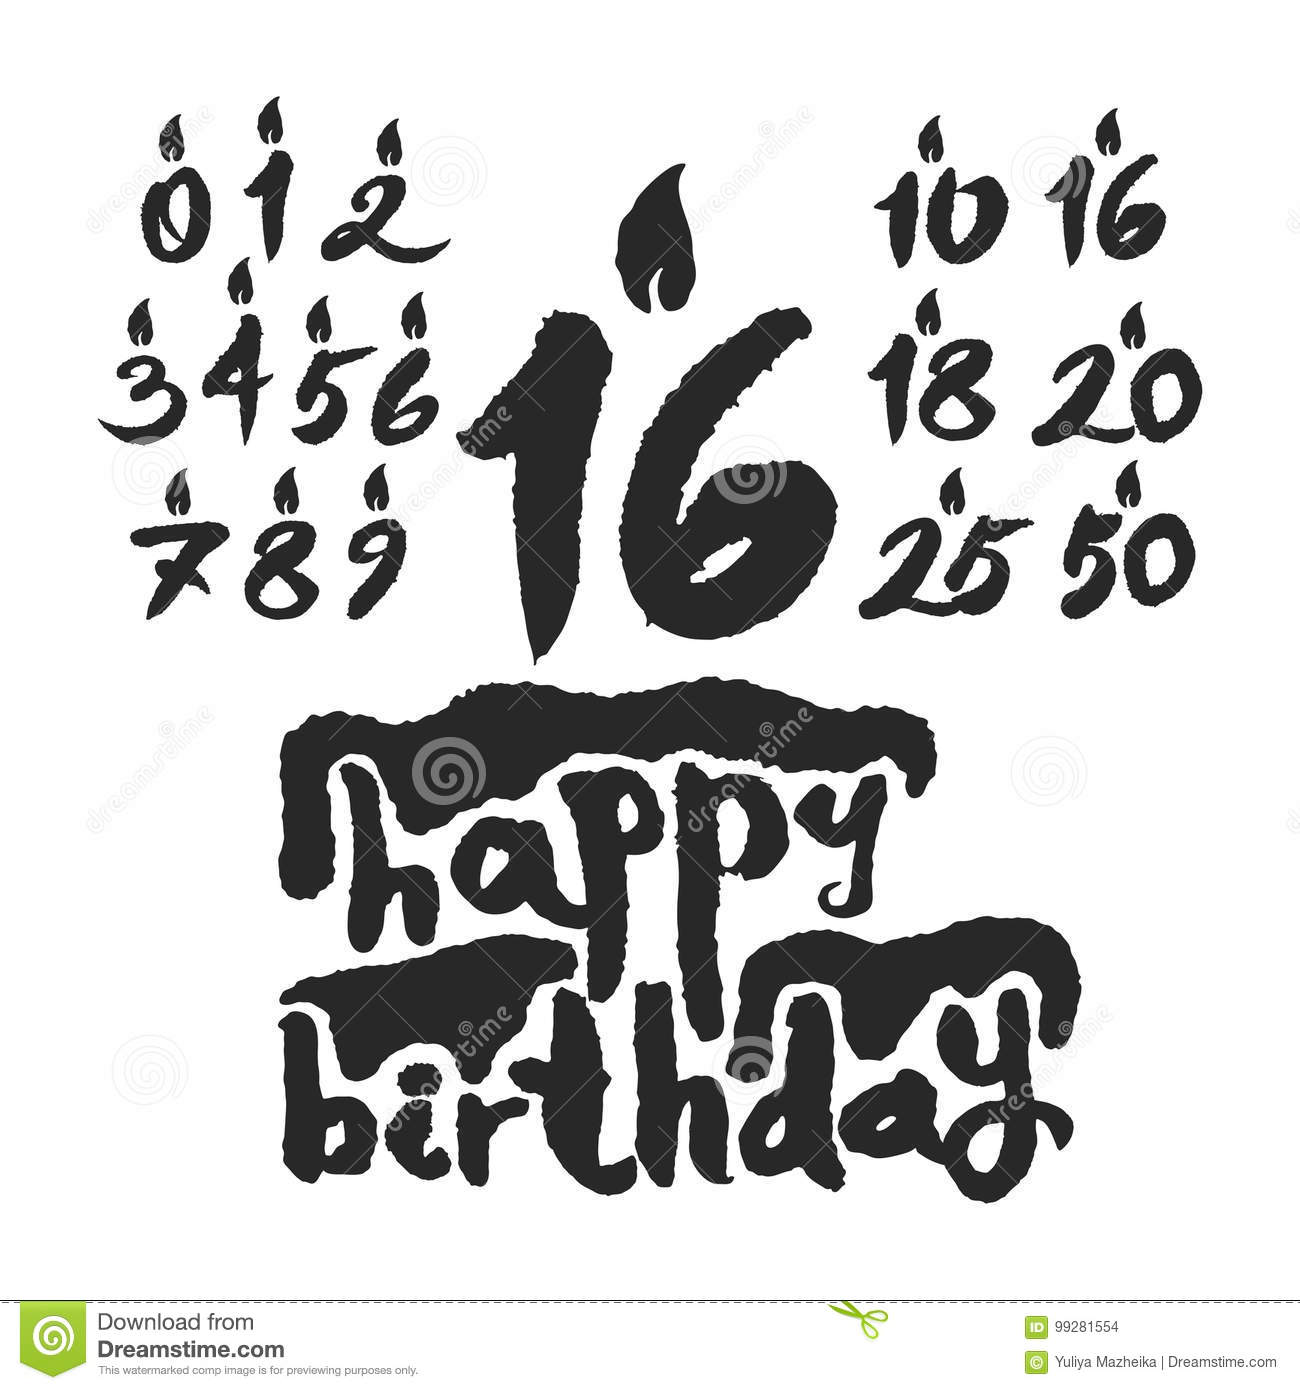 Happy Birthday Cake With Various Candles Numbers For Custom Design Hand Written Calligraphy On White Background Clipping Paths Included